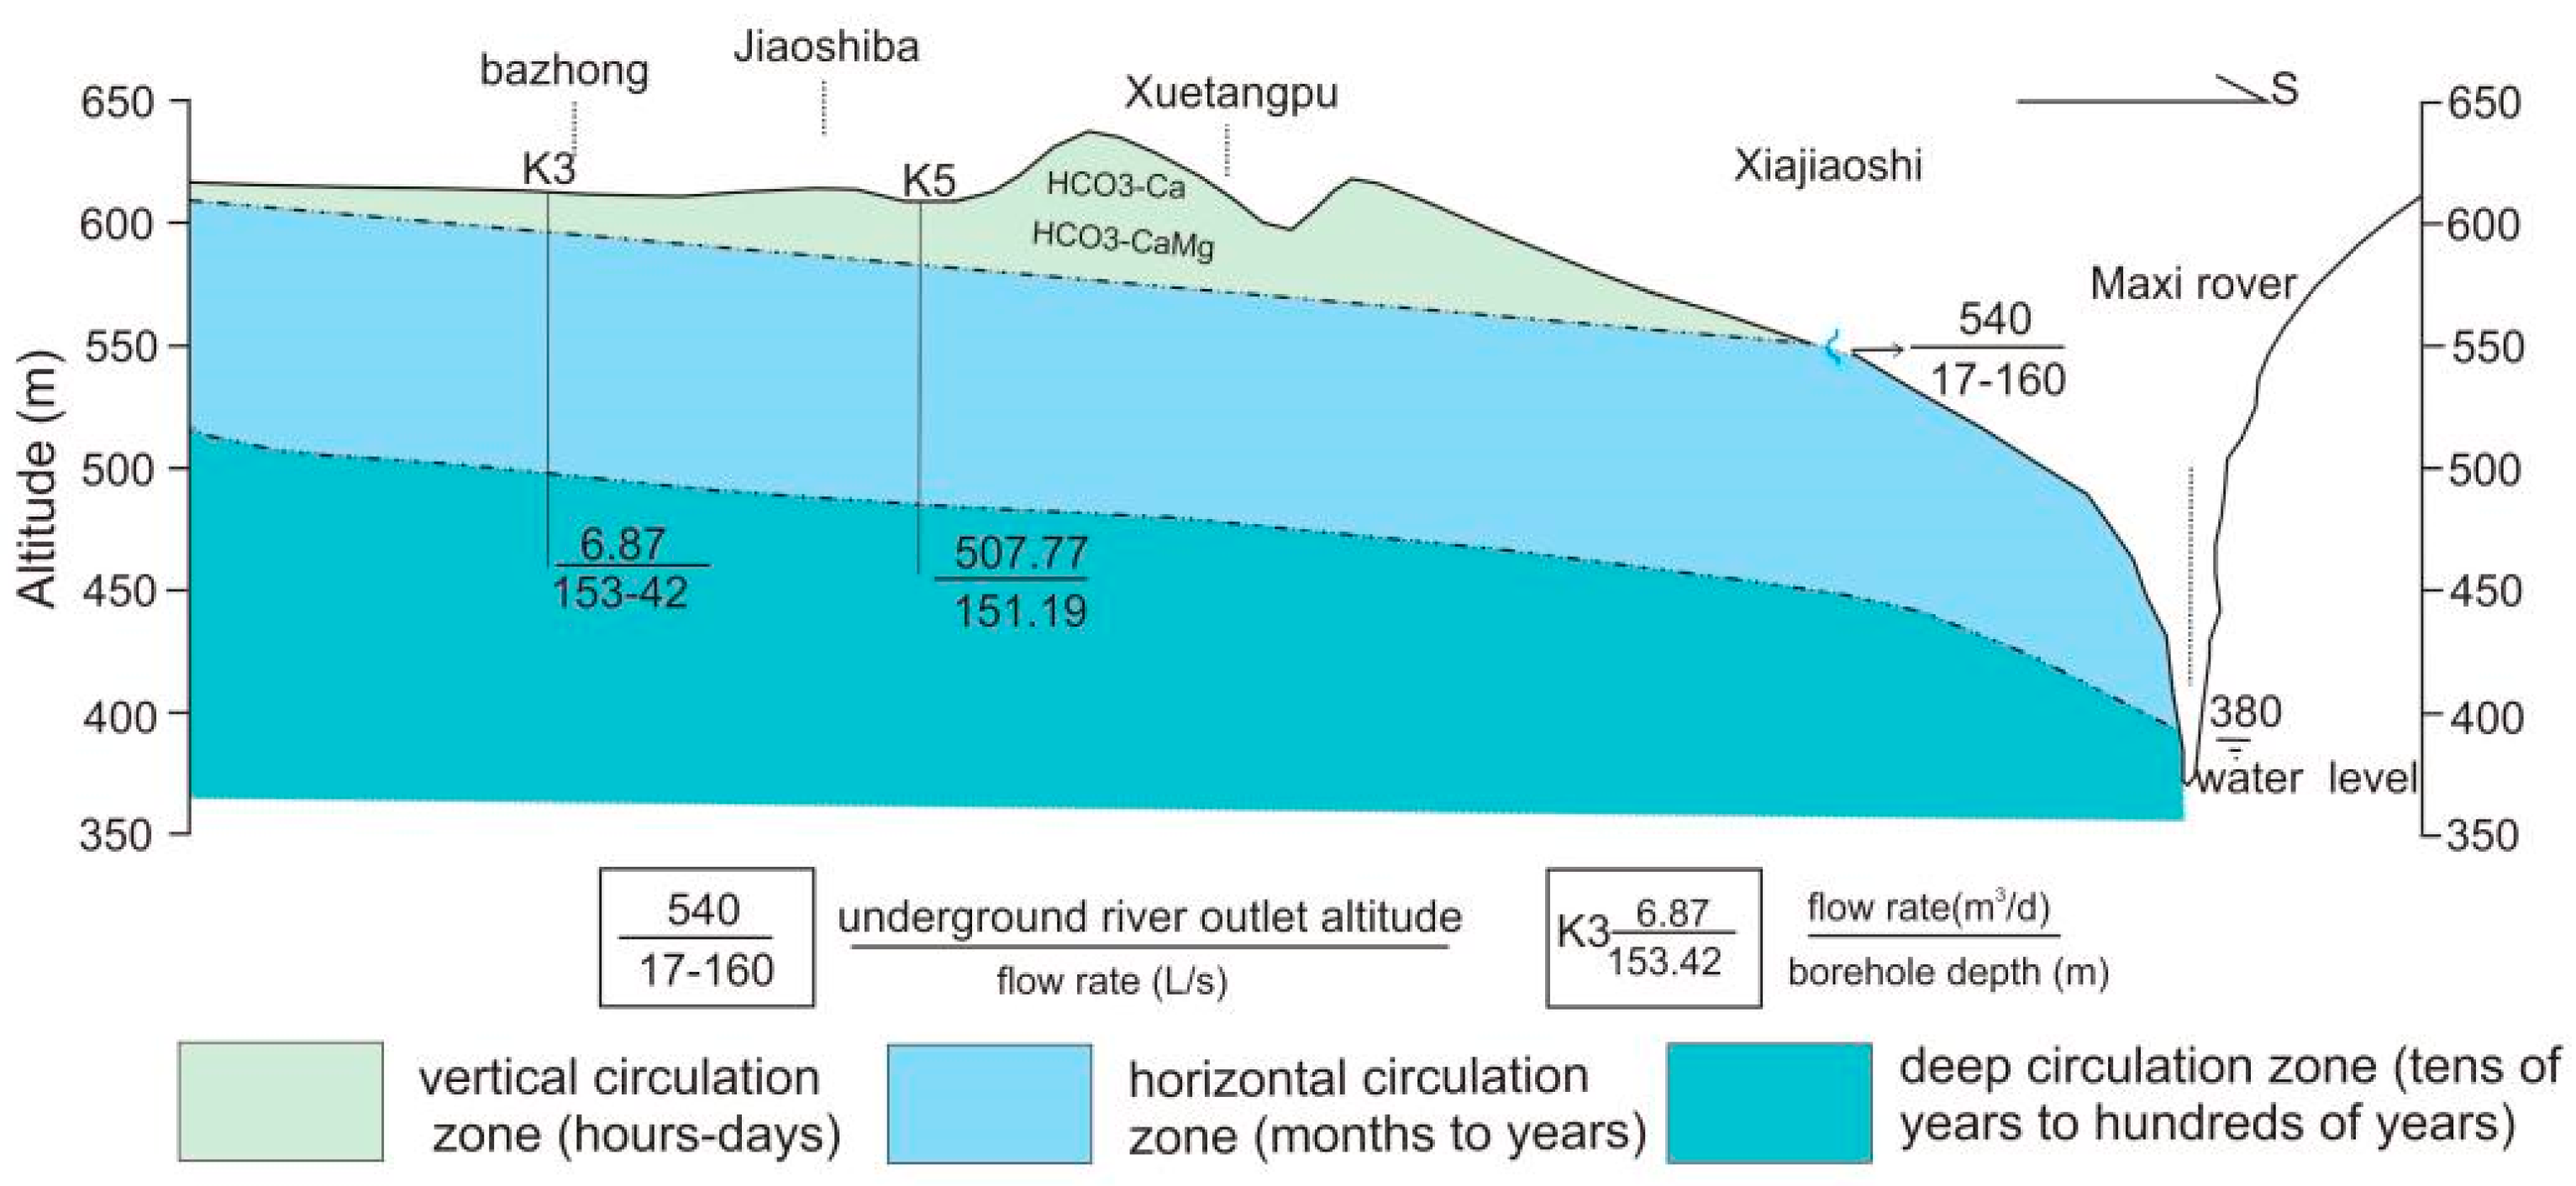 an analysis of the shallow aquifers system Estimation of hydraulic conductivity using the slug test method in a shallow aquifer in the data analysis are available the slug test is aquifer system.